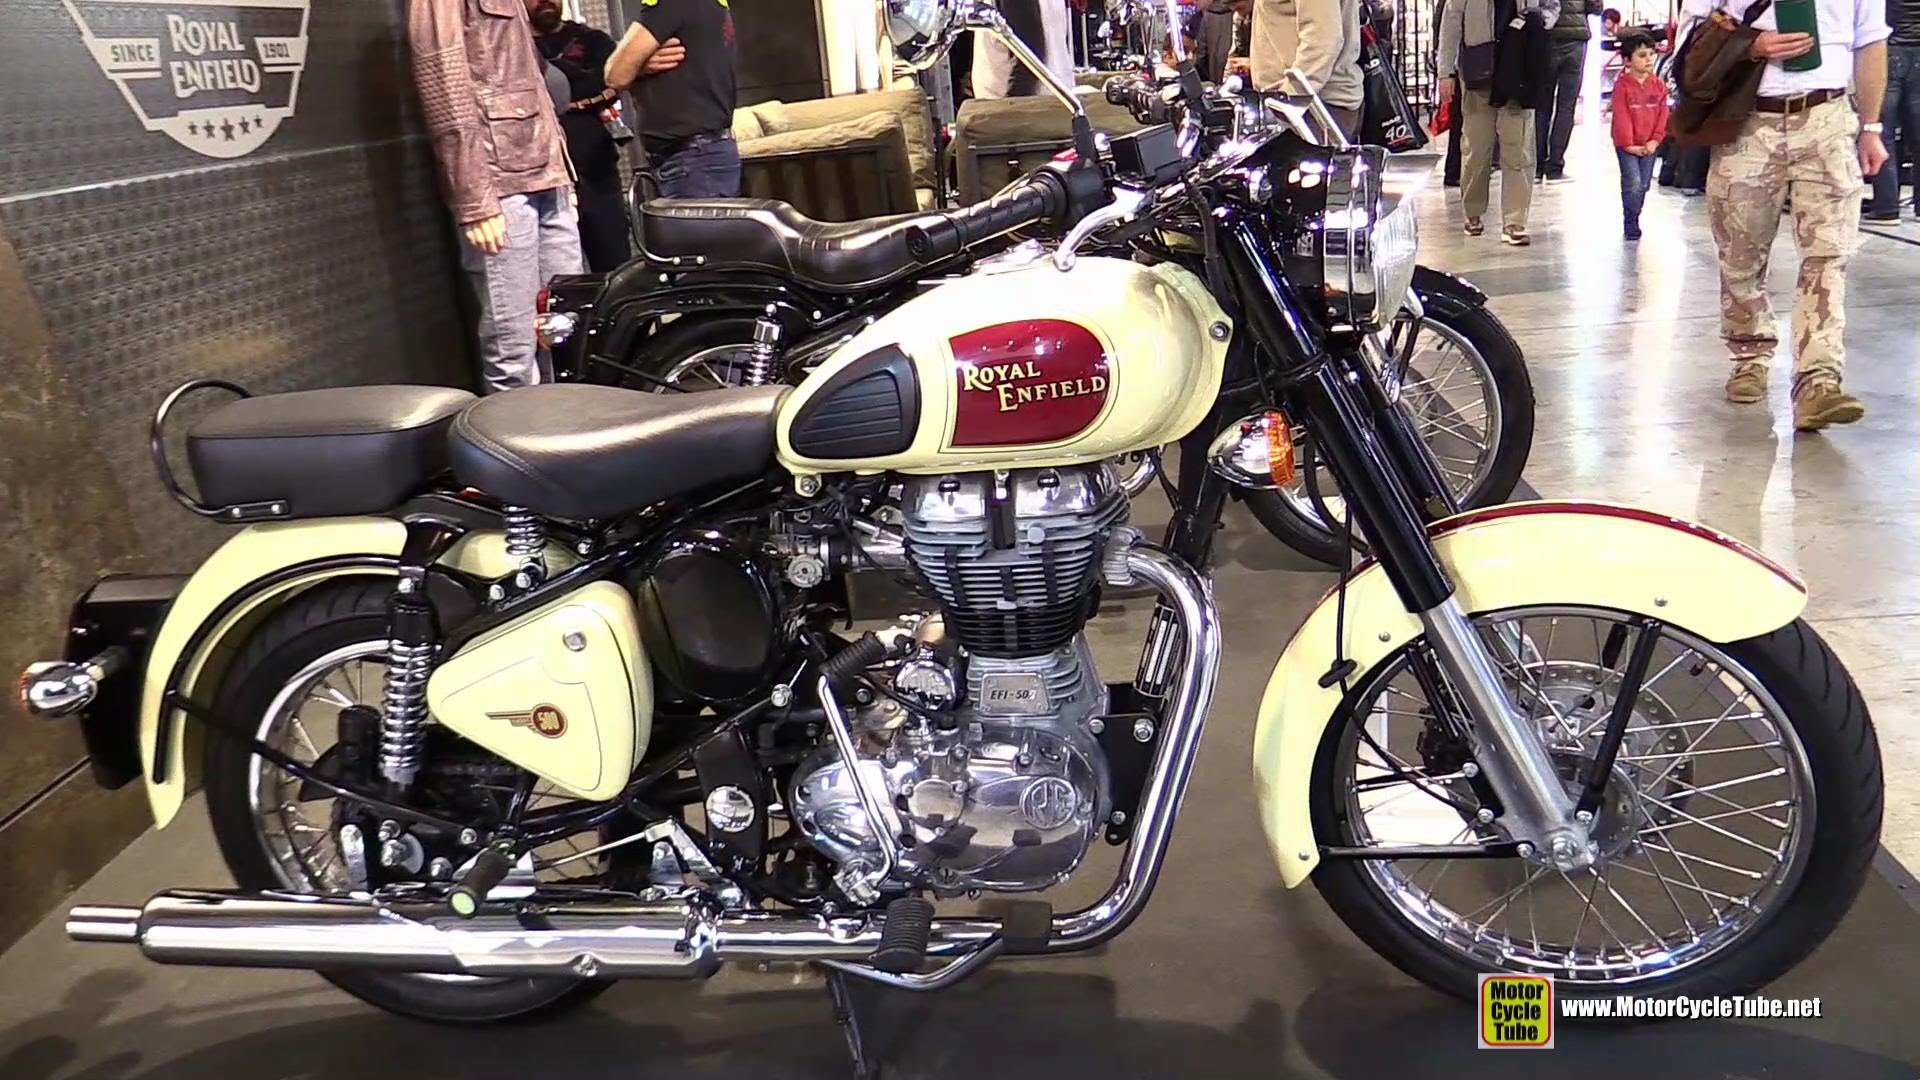 Royal Enfield Bullet C5 Classic EFI 2010 images #127535